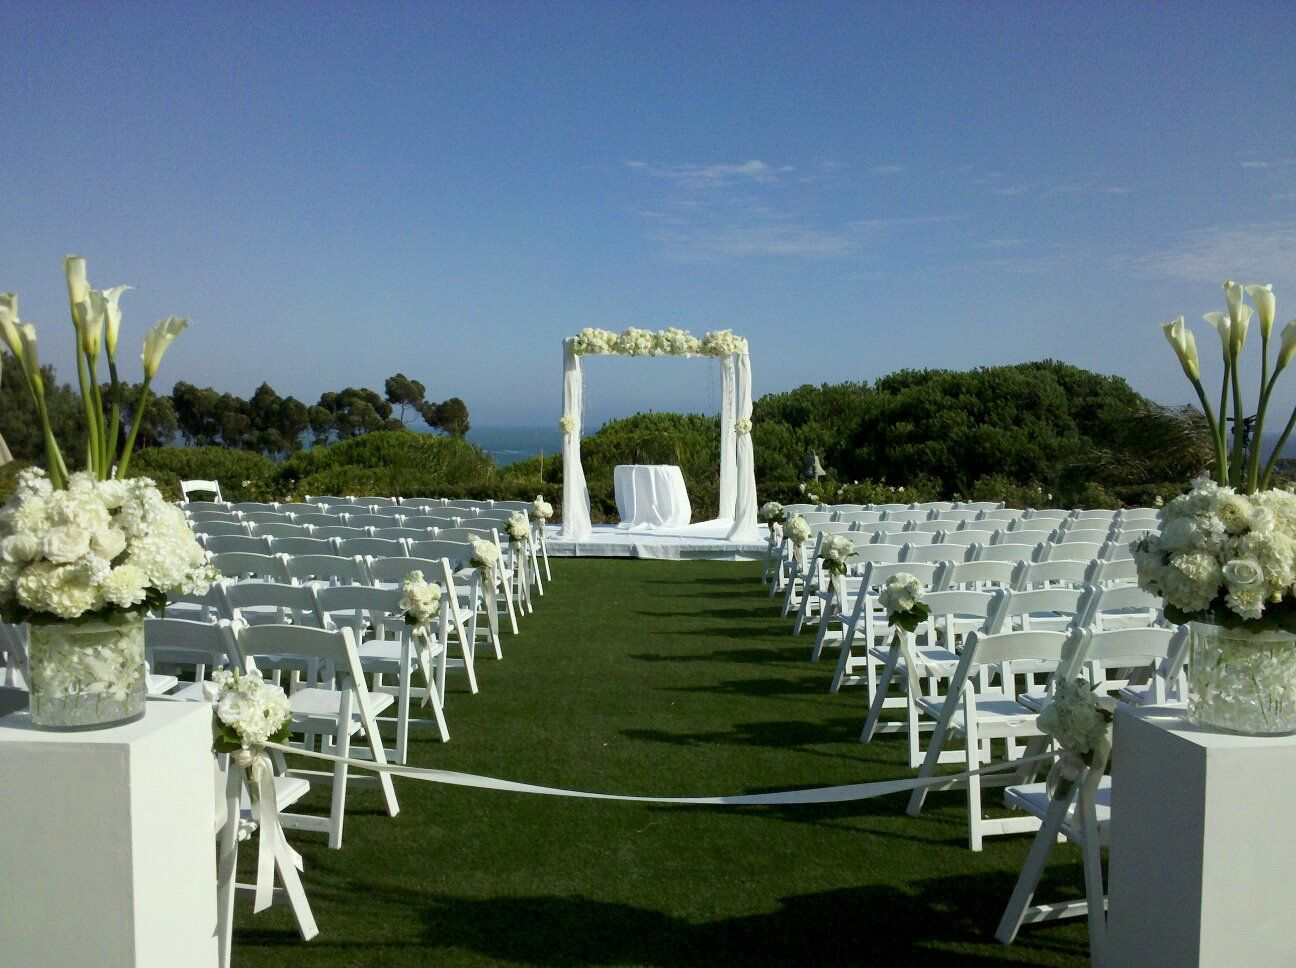 If You Are Looking For A Great Wedding Venue Consider Ceremony At The Laguna Cliffs Marriott Brought To By This Los Angeles Minister